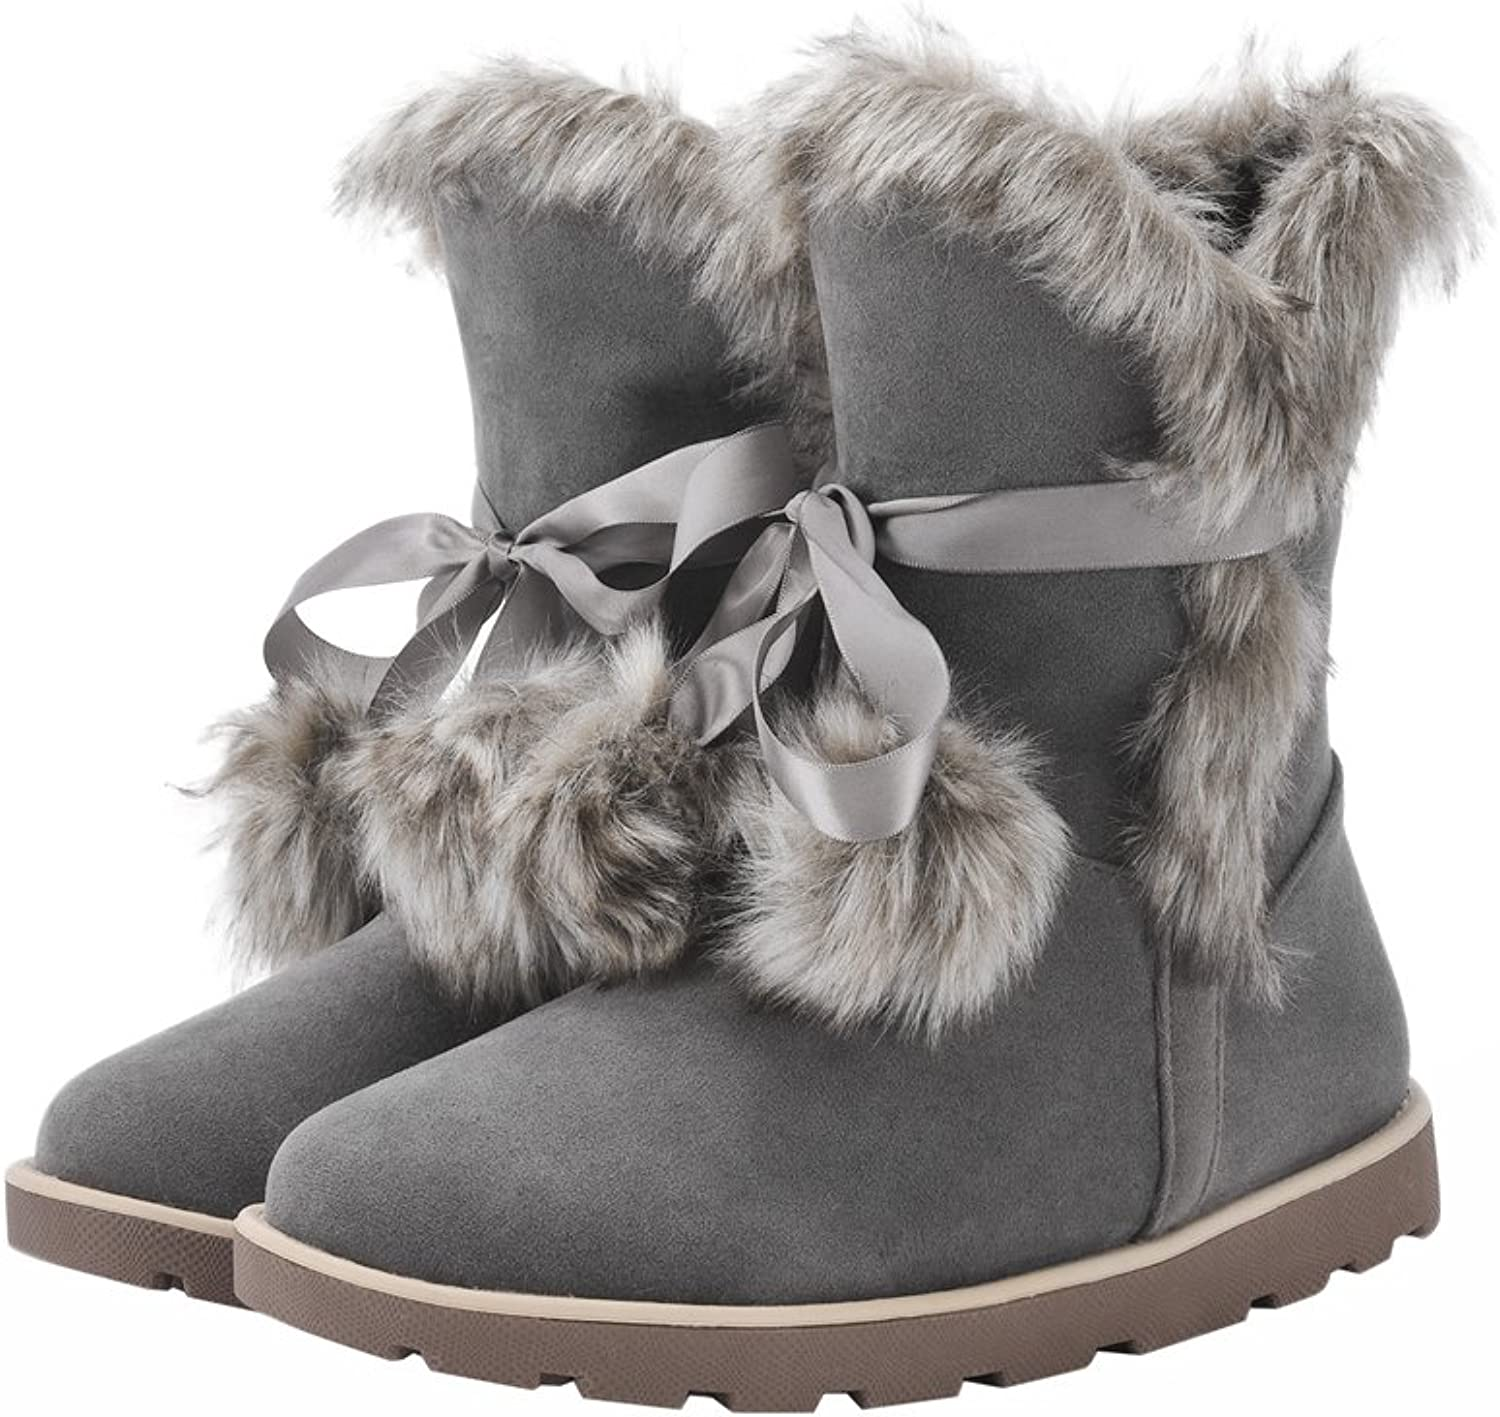 Eclimb Women's Winter Snow Fur Lining Slip on Casual Fashion Cold Weather Boots